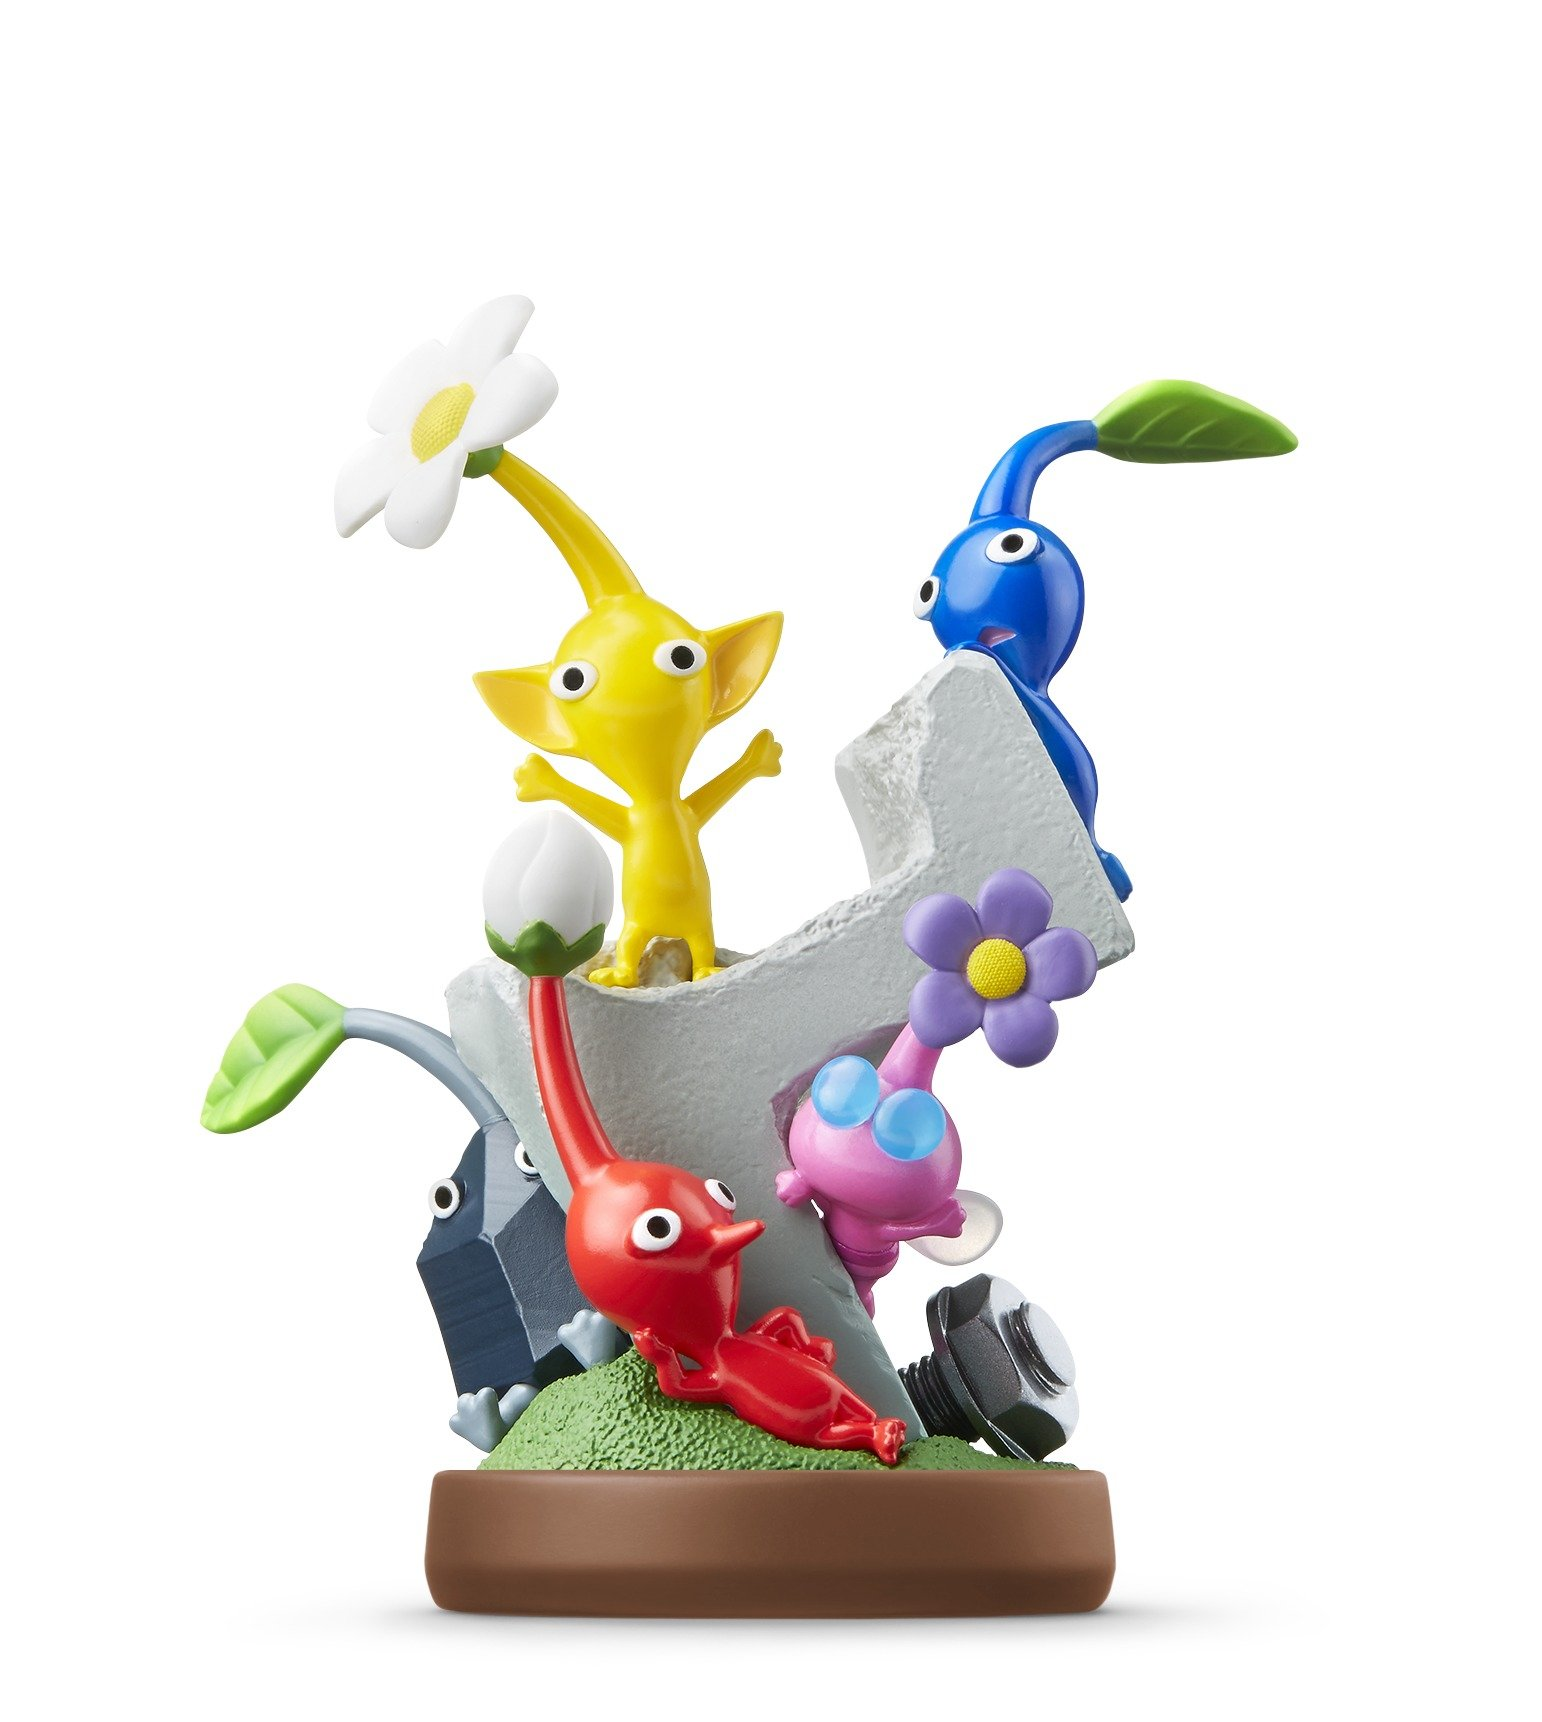 Buy Pikmin Nintendo Amiibo Now!